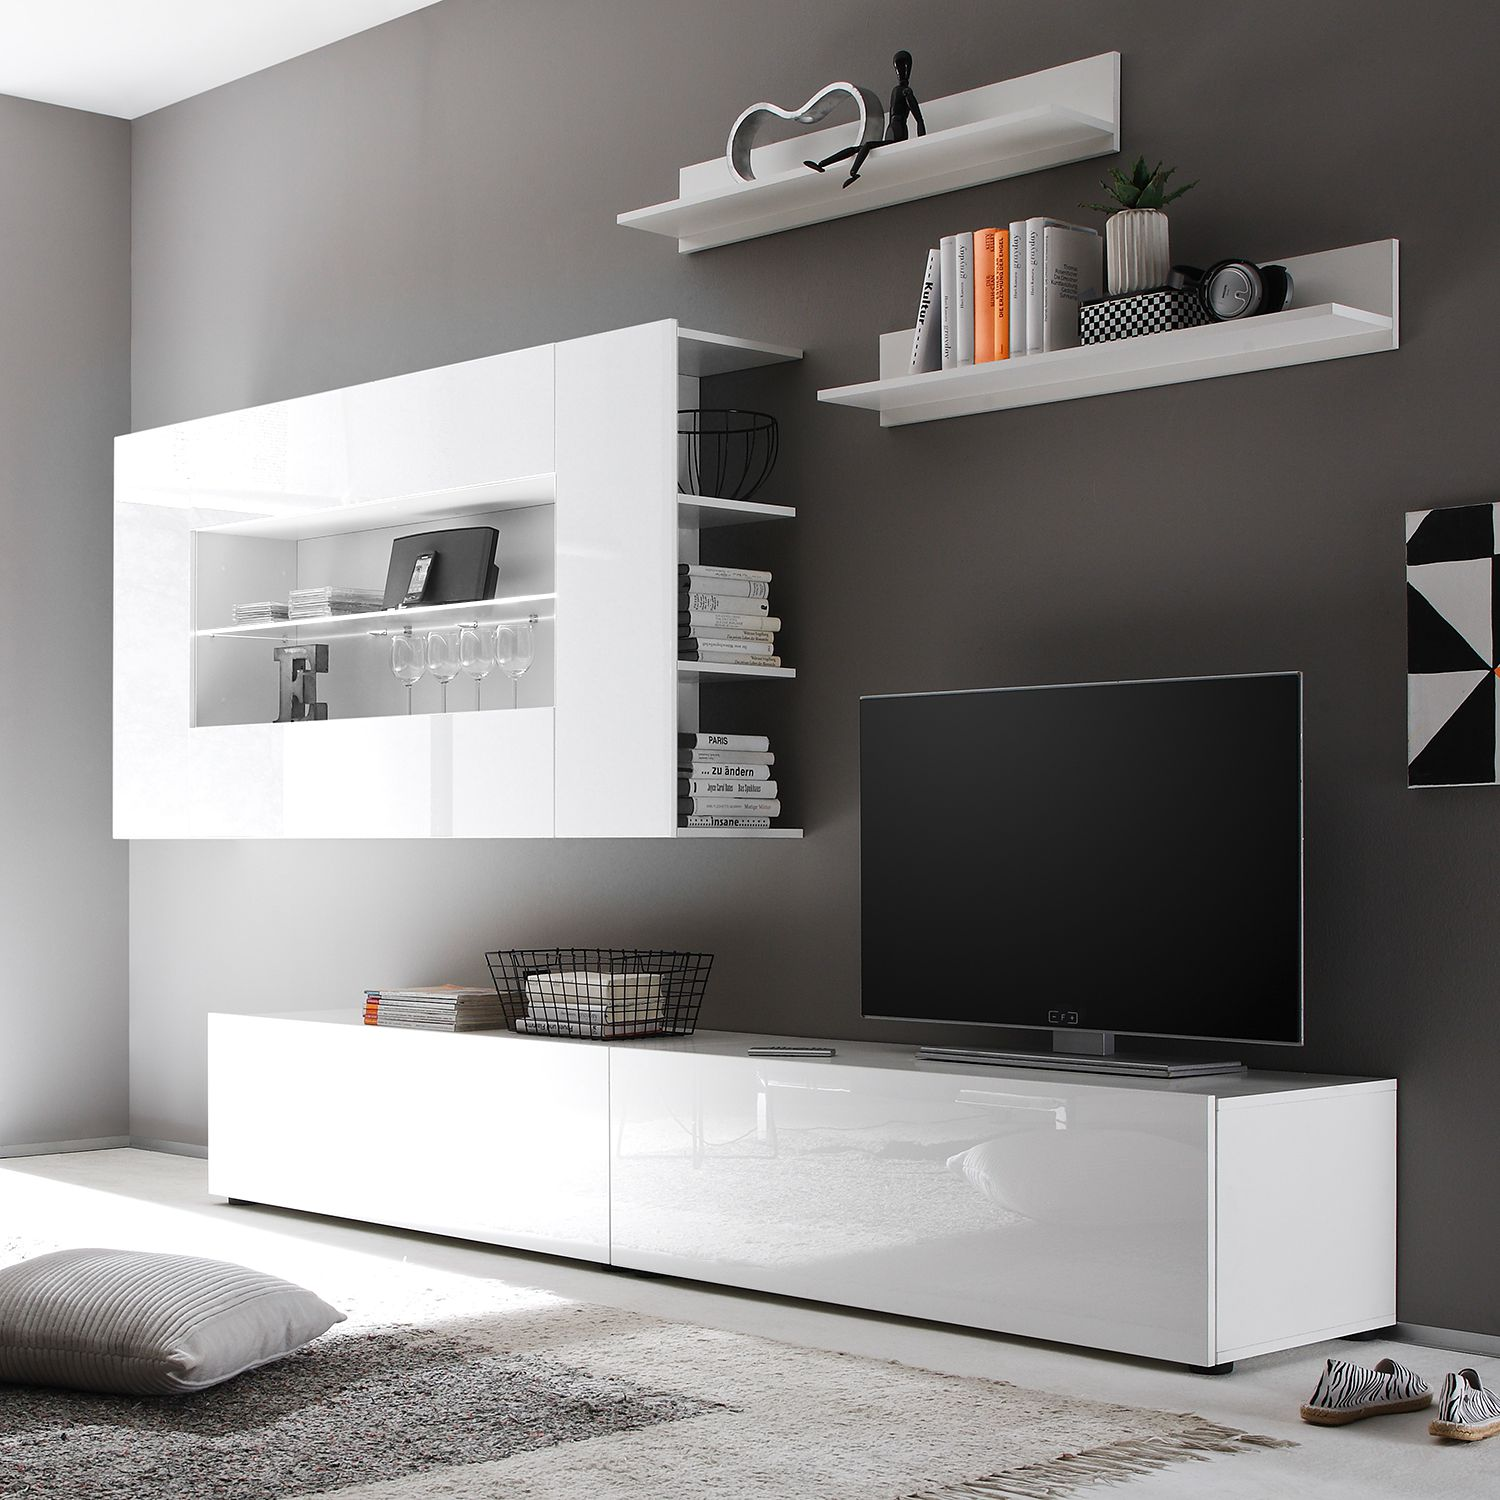 fernsehwand wei fabulous cheap erstaunlich babyzimmer farbe und tv wand selber tv wand selber. Black Bedroom Furniture Sets. Home Design Ideas